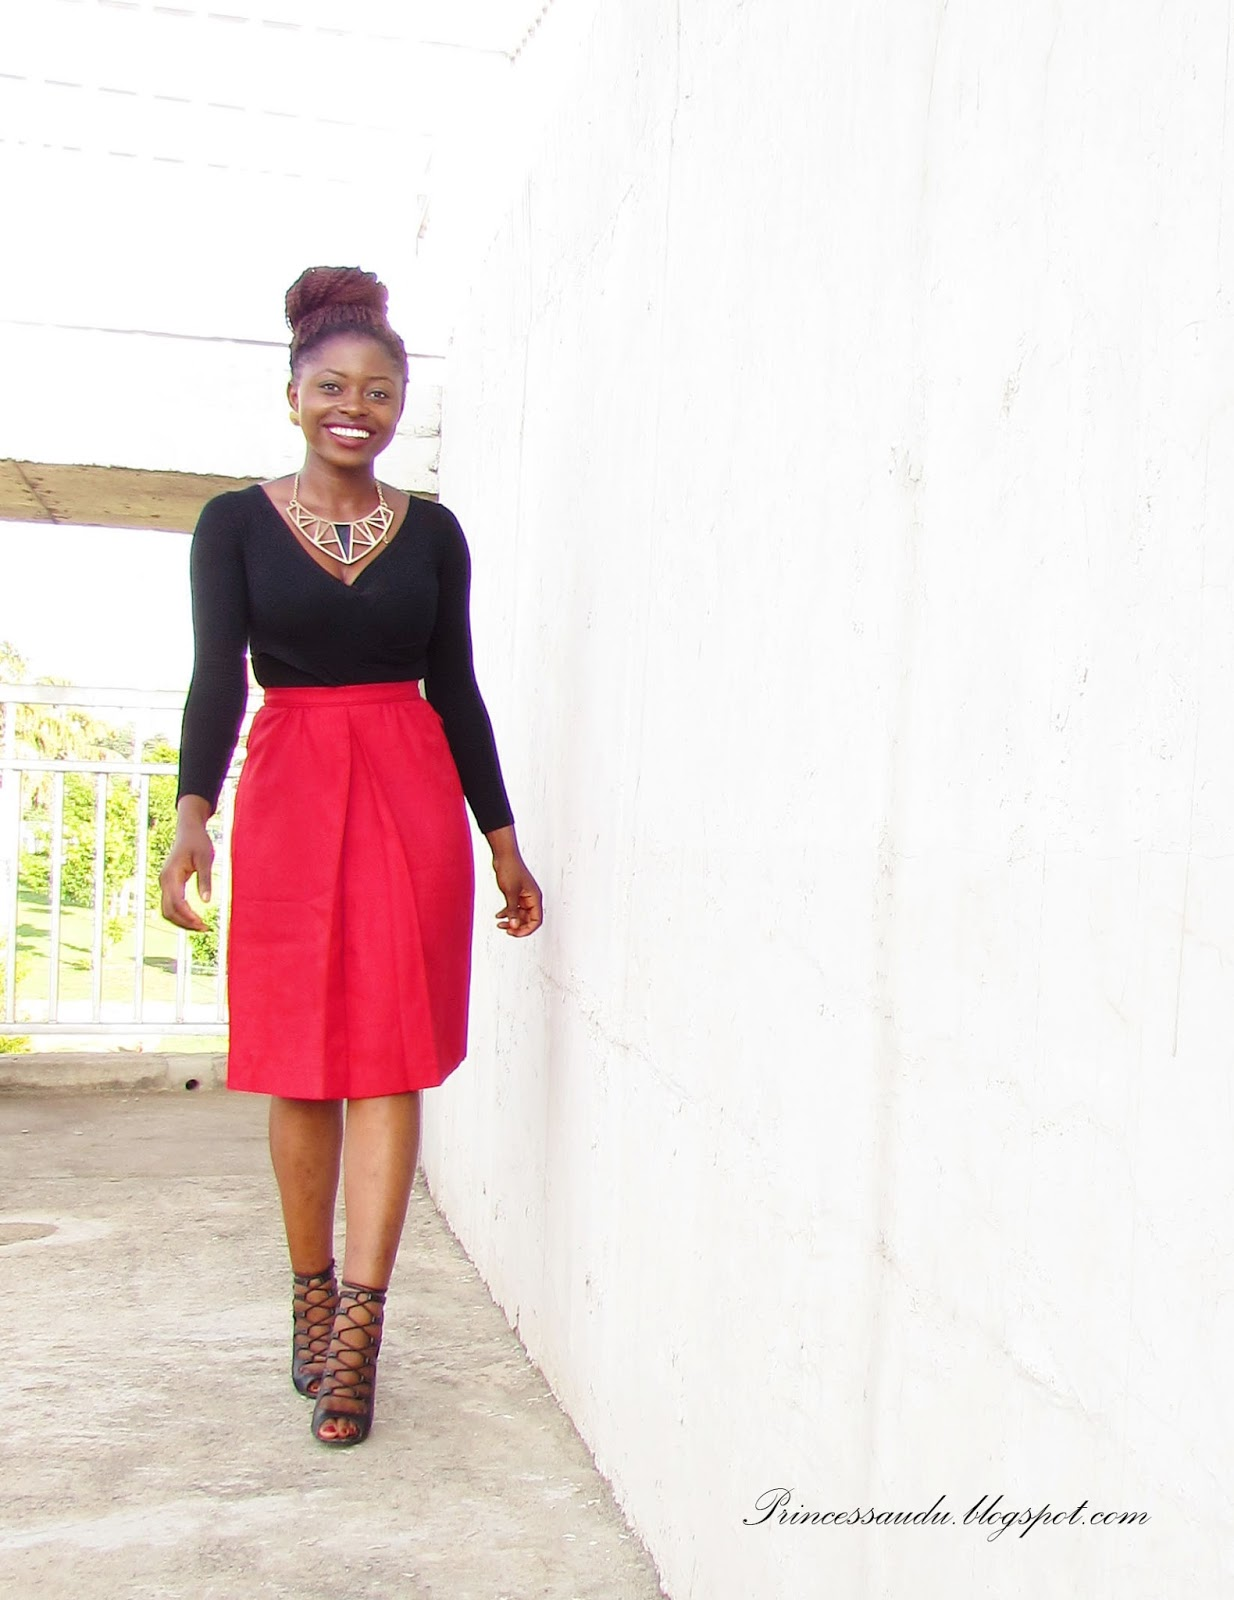 how to spice up an outfit, lace-up booties, red midi-skirt, wardrobe basics